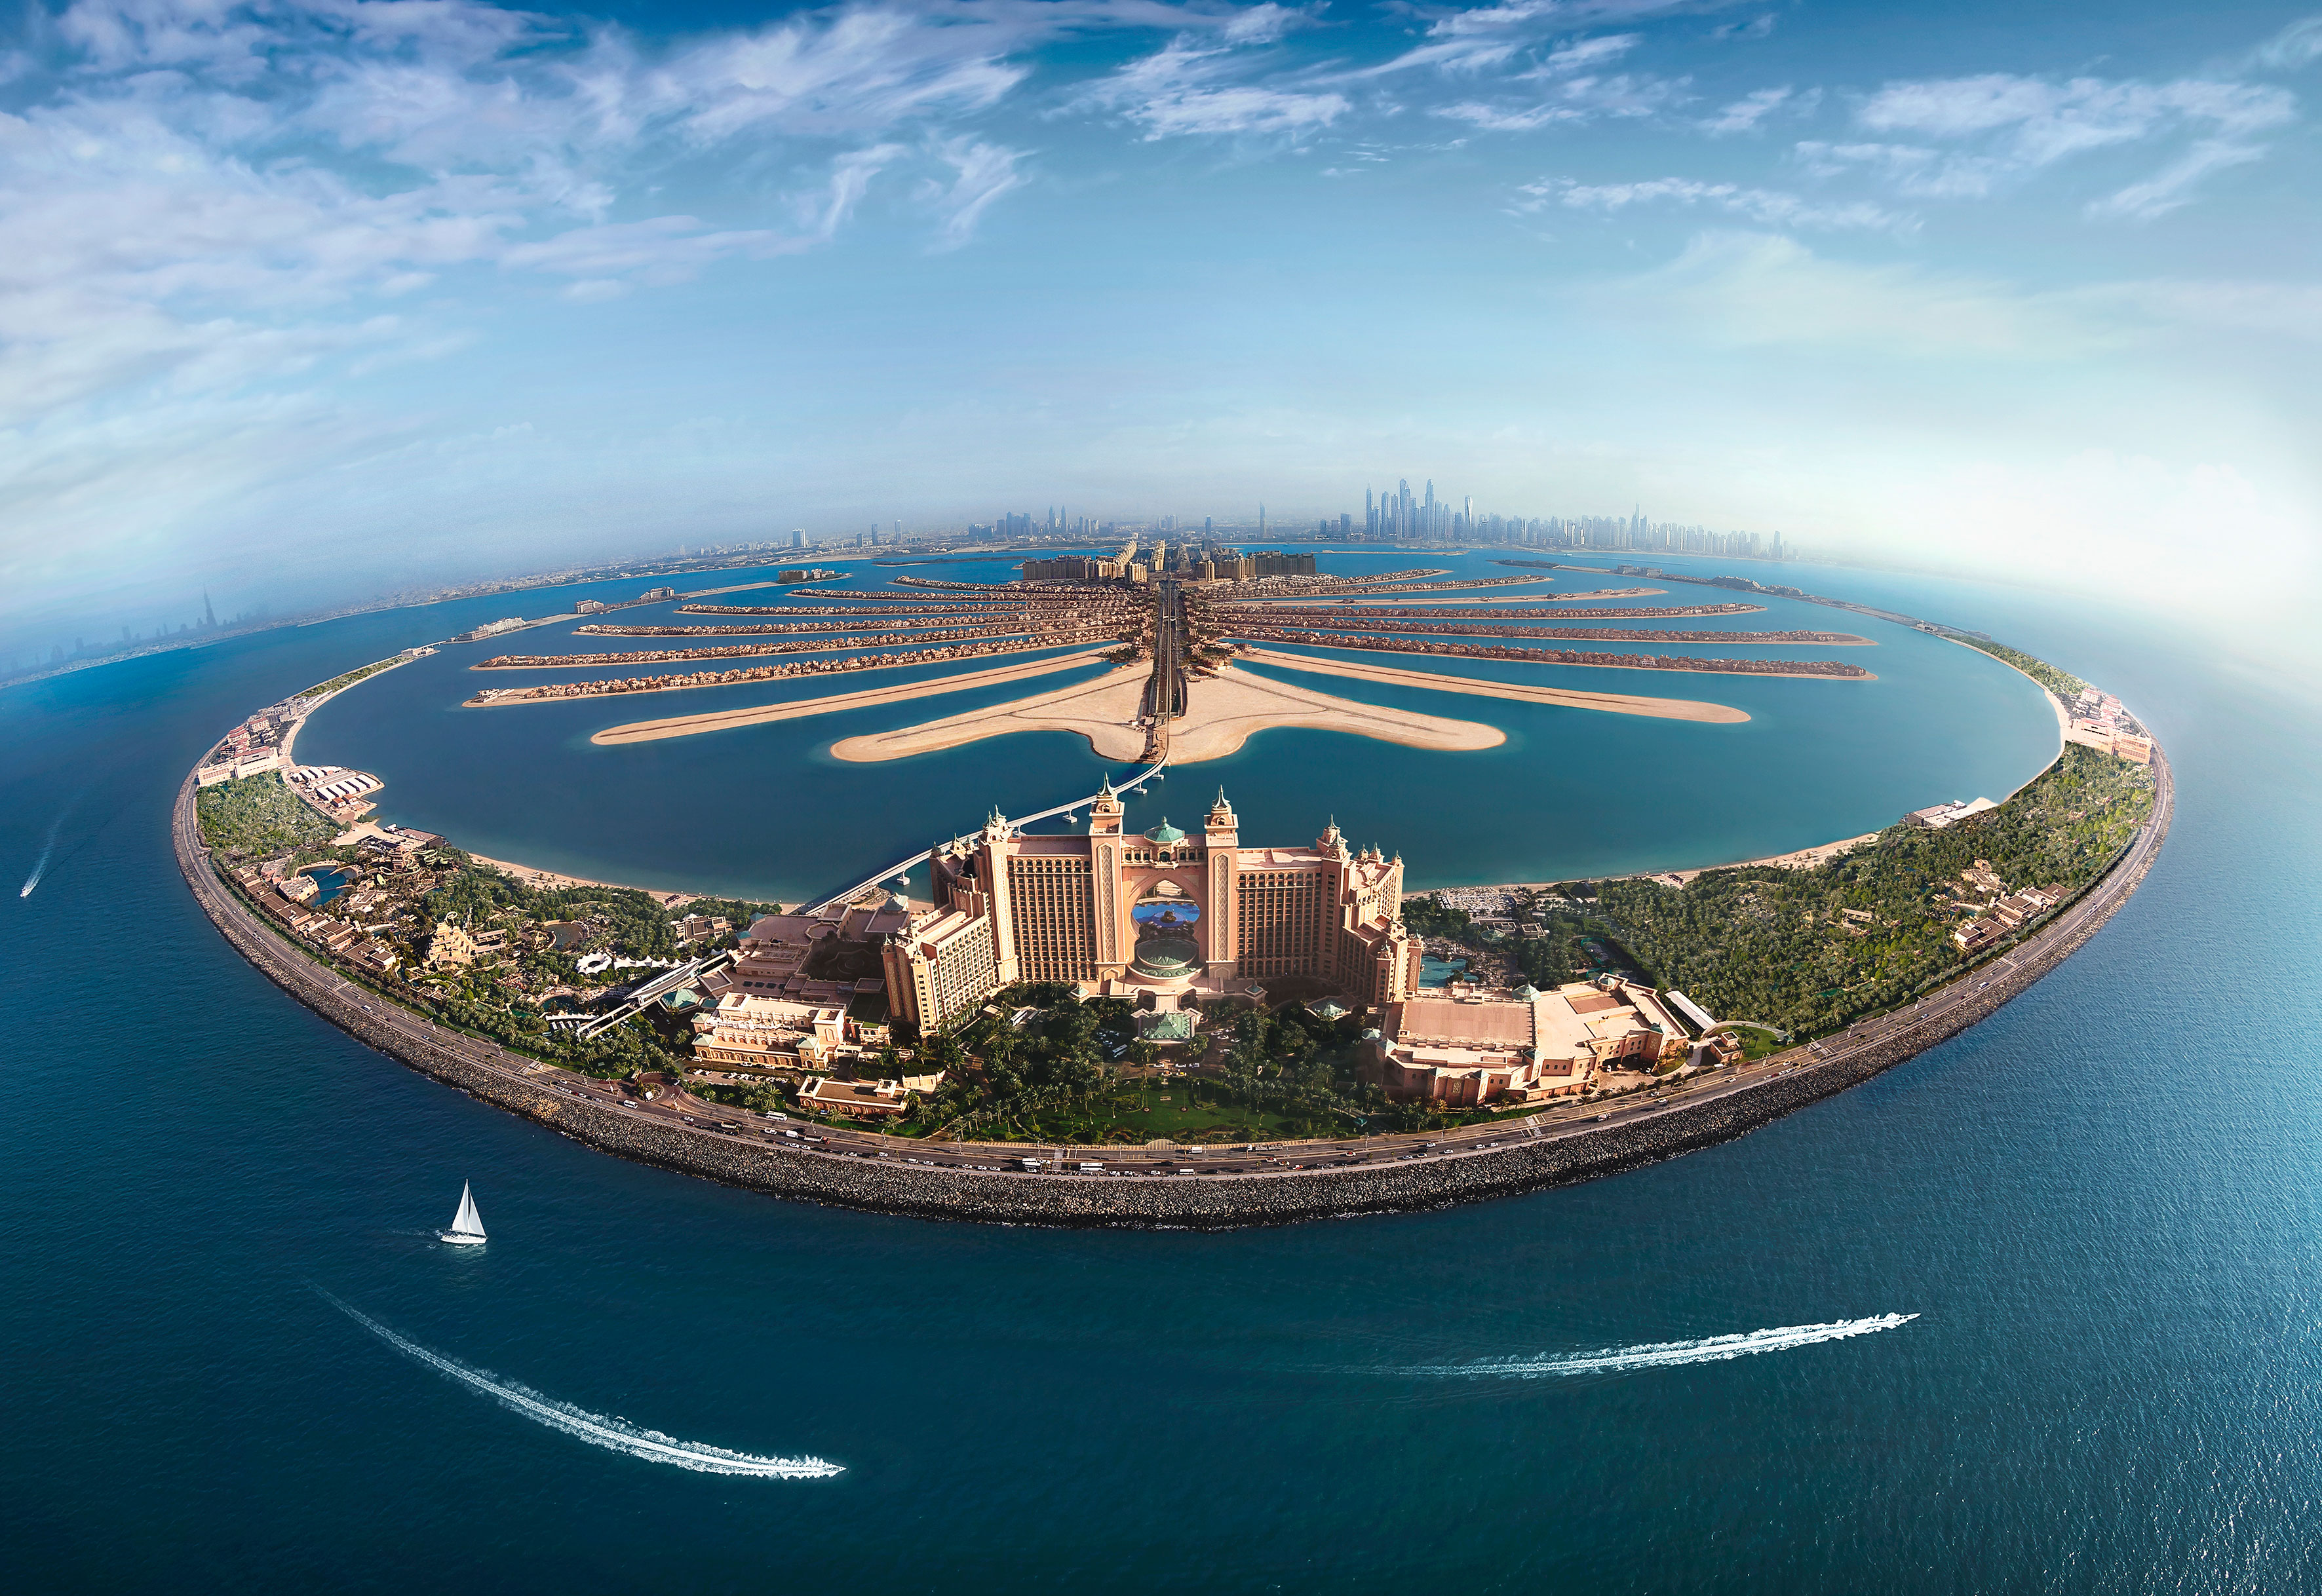 Dubai Luxury Travel luxury travel Top Luxury Travel Destinations Dubai Luxury Travel